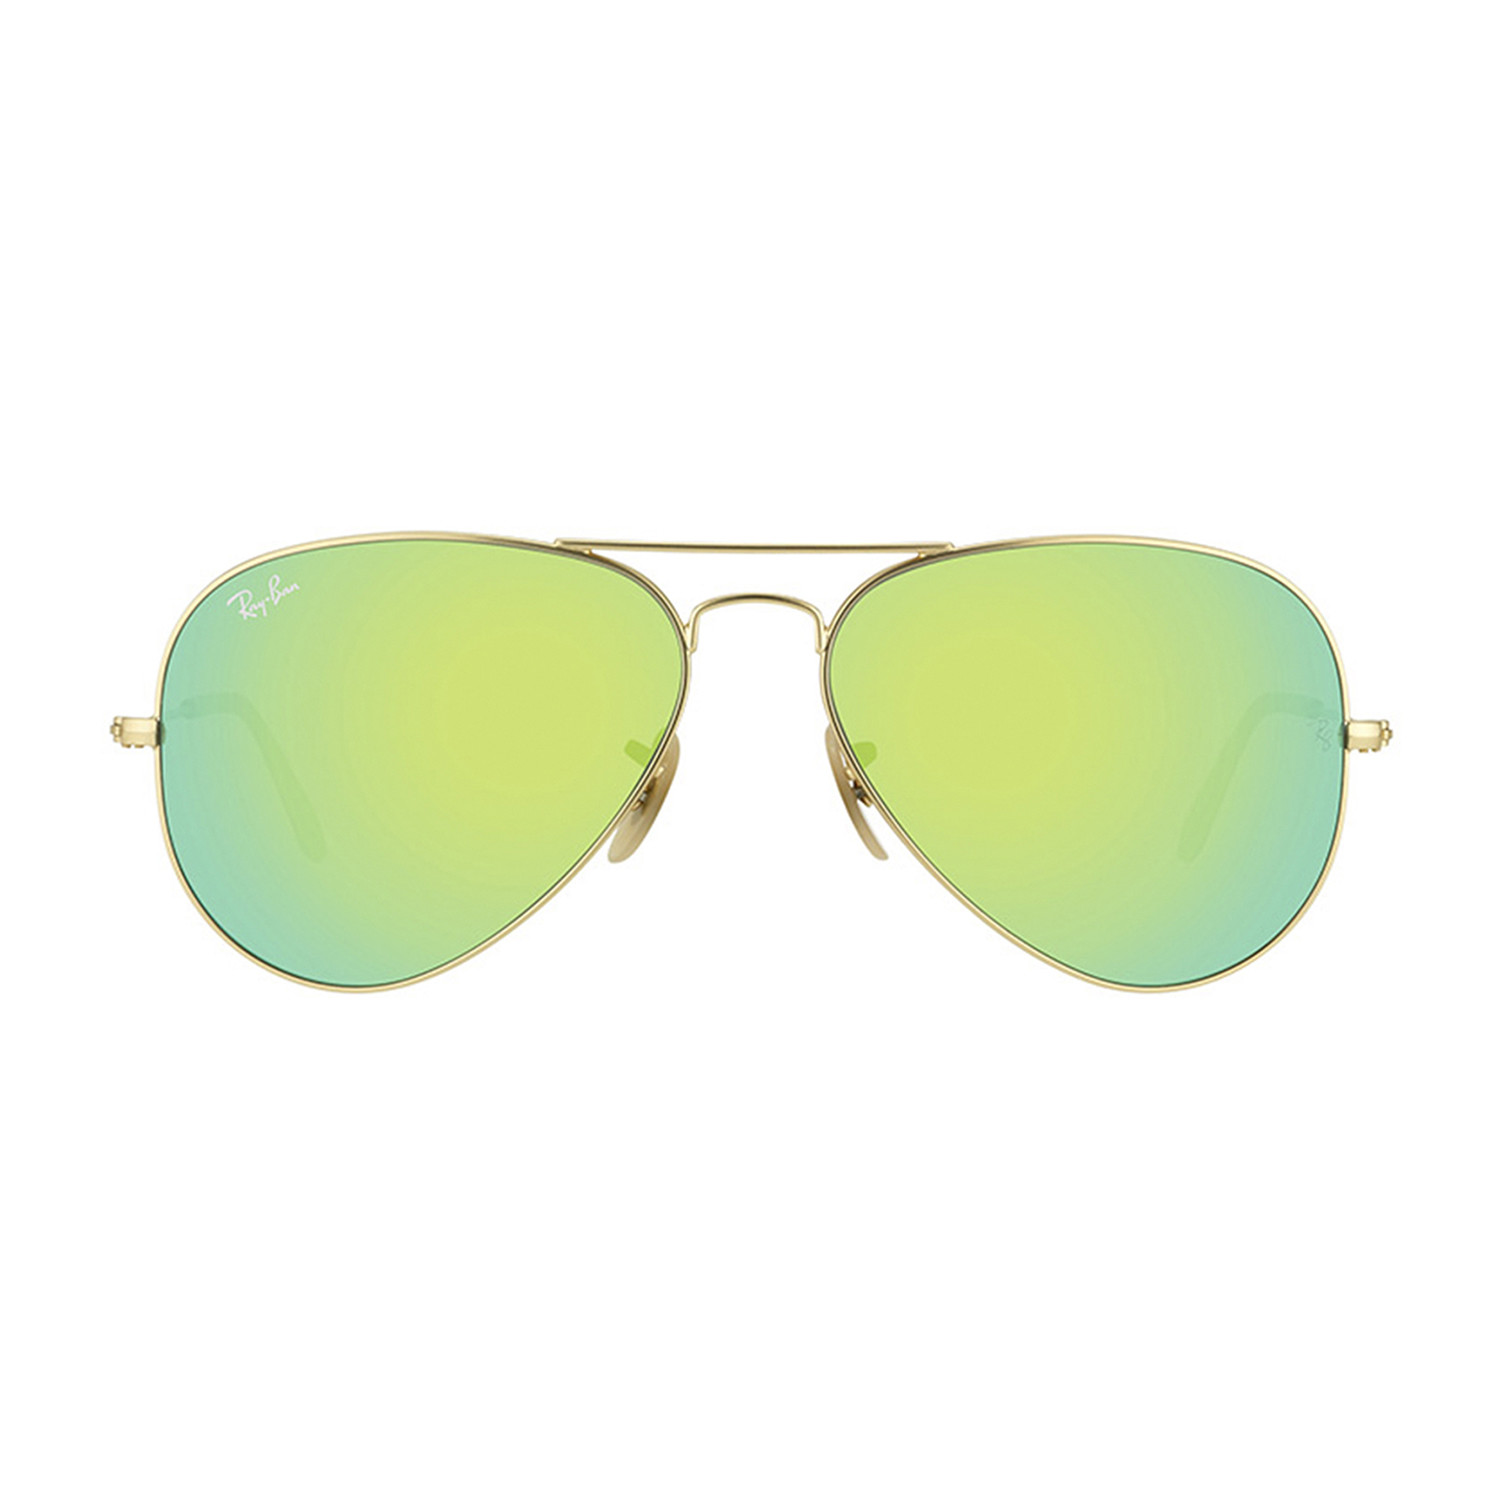 013d150802d F084a953dd512b9ad82c510a1bb271b6 medium · Ray-Ban    Men s Large Metal  Aviator Sunglasses    Matte Gold + Green